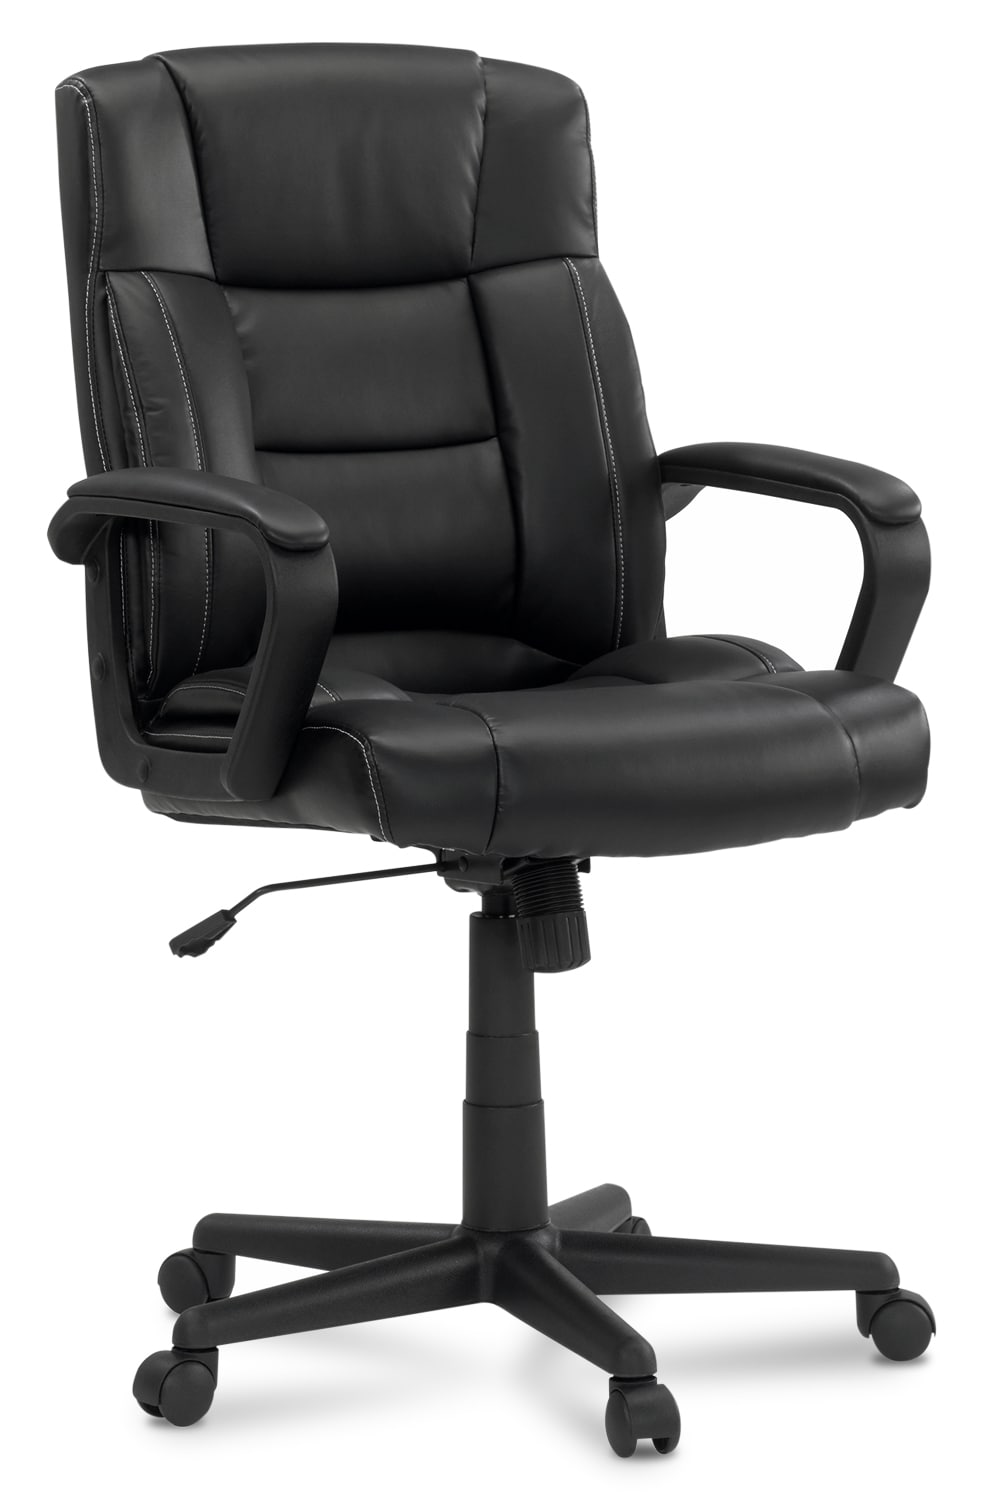 Office chairs the brick for Office chair images